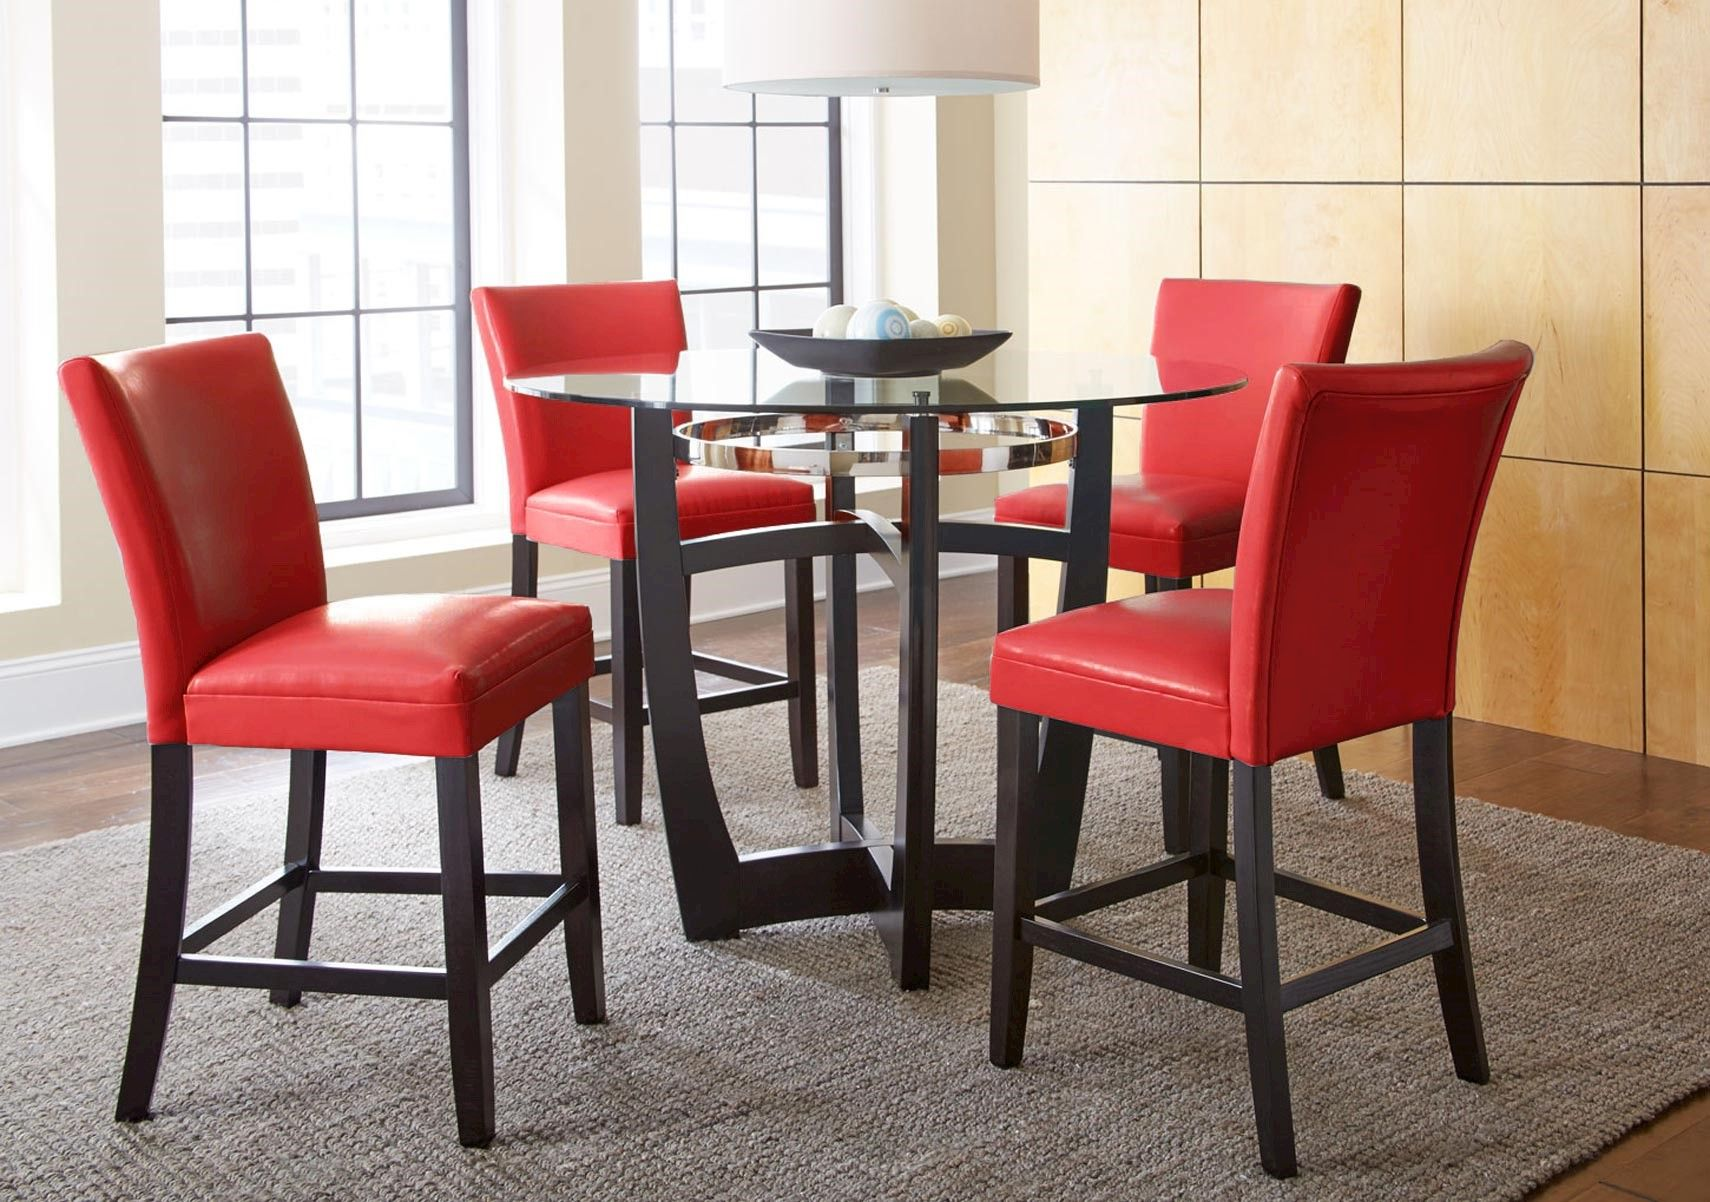 Lacks Matinee Red 5 Pc Counter Height Dining Set Counter